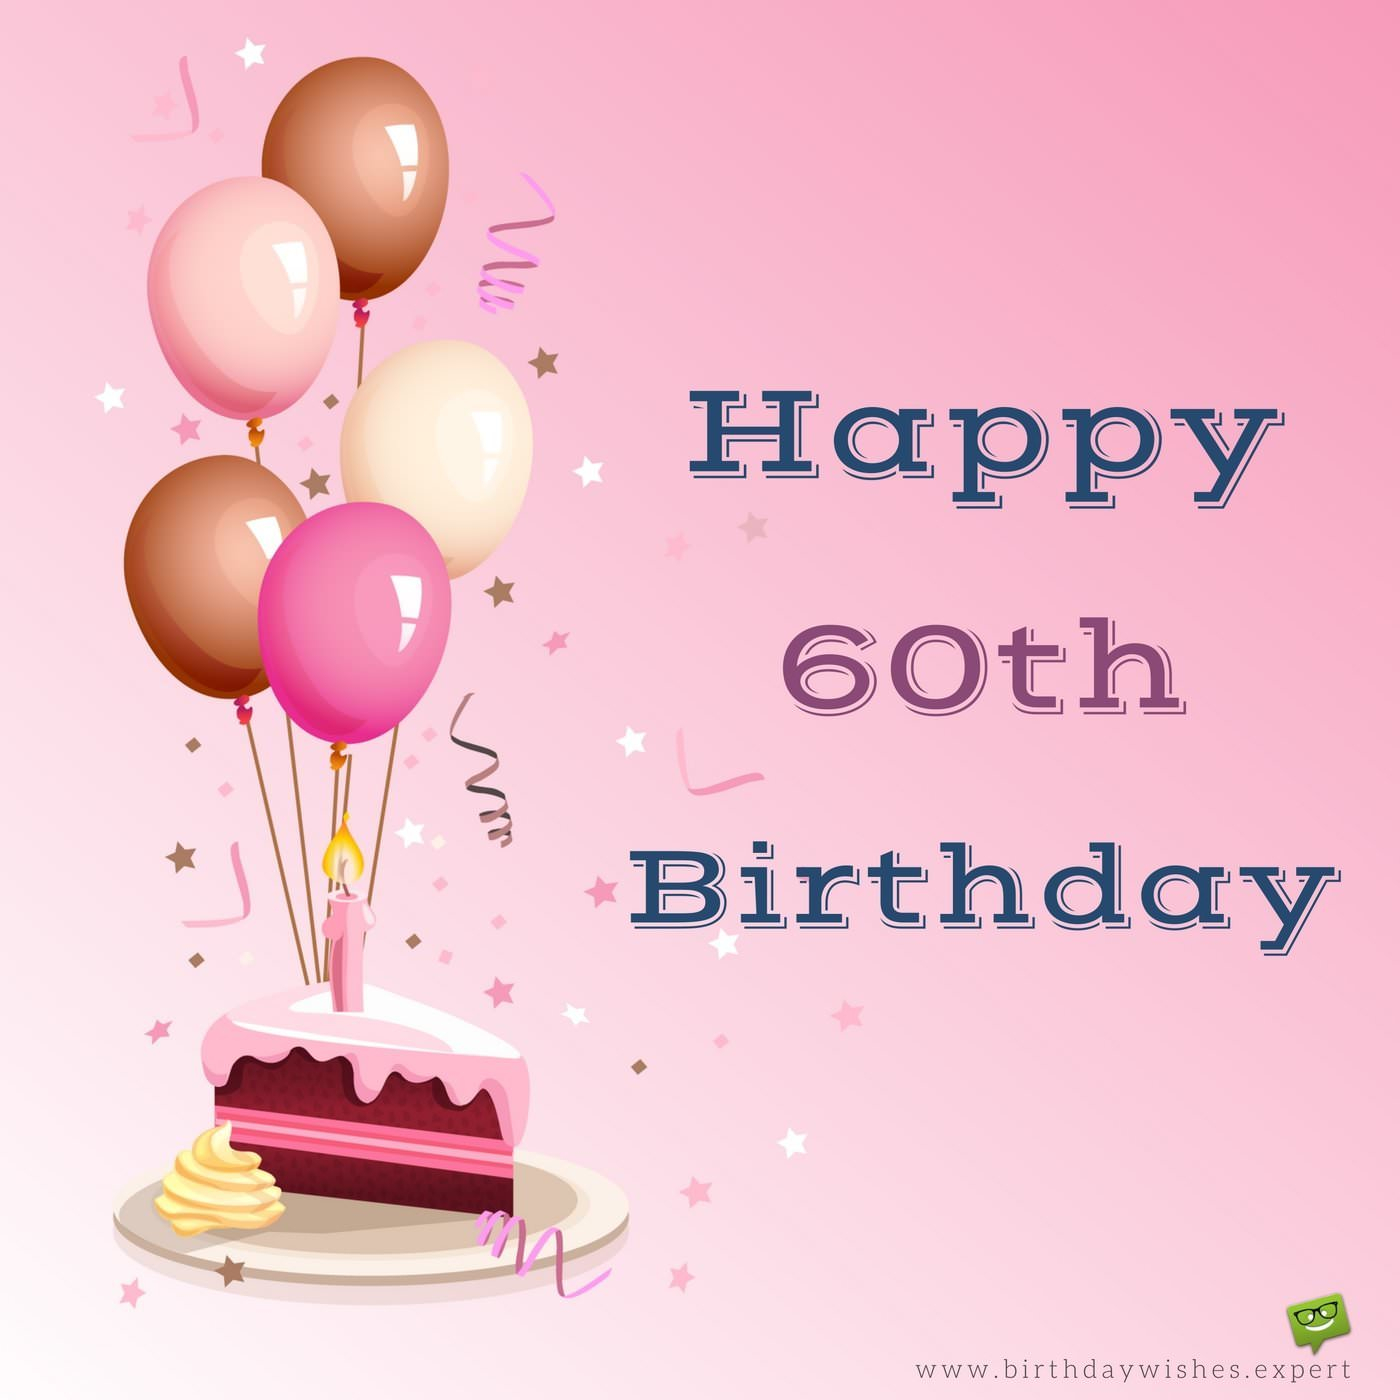 60th birthday message for mother ; Happy-60th-Birthday-wish-on-image-with-cake-and-celebration-decoration-elements